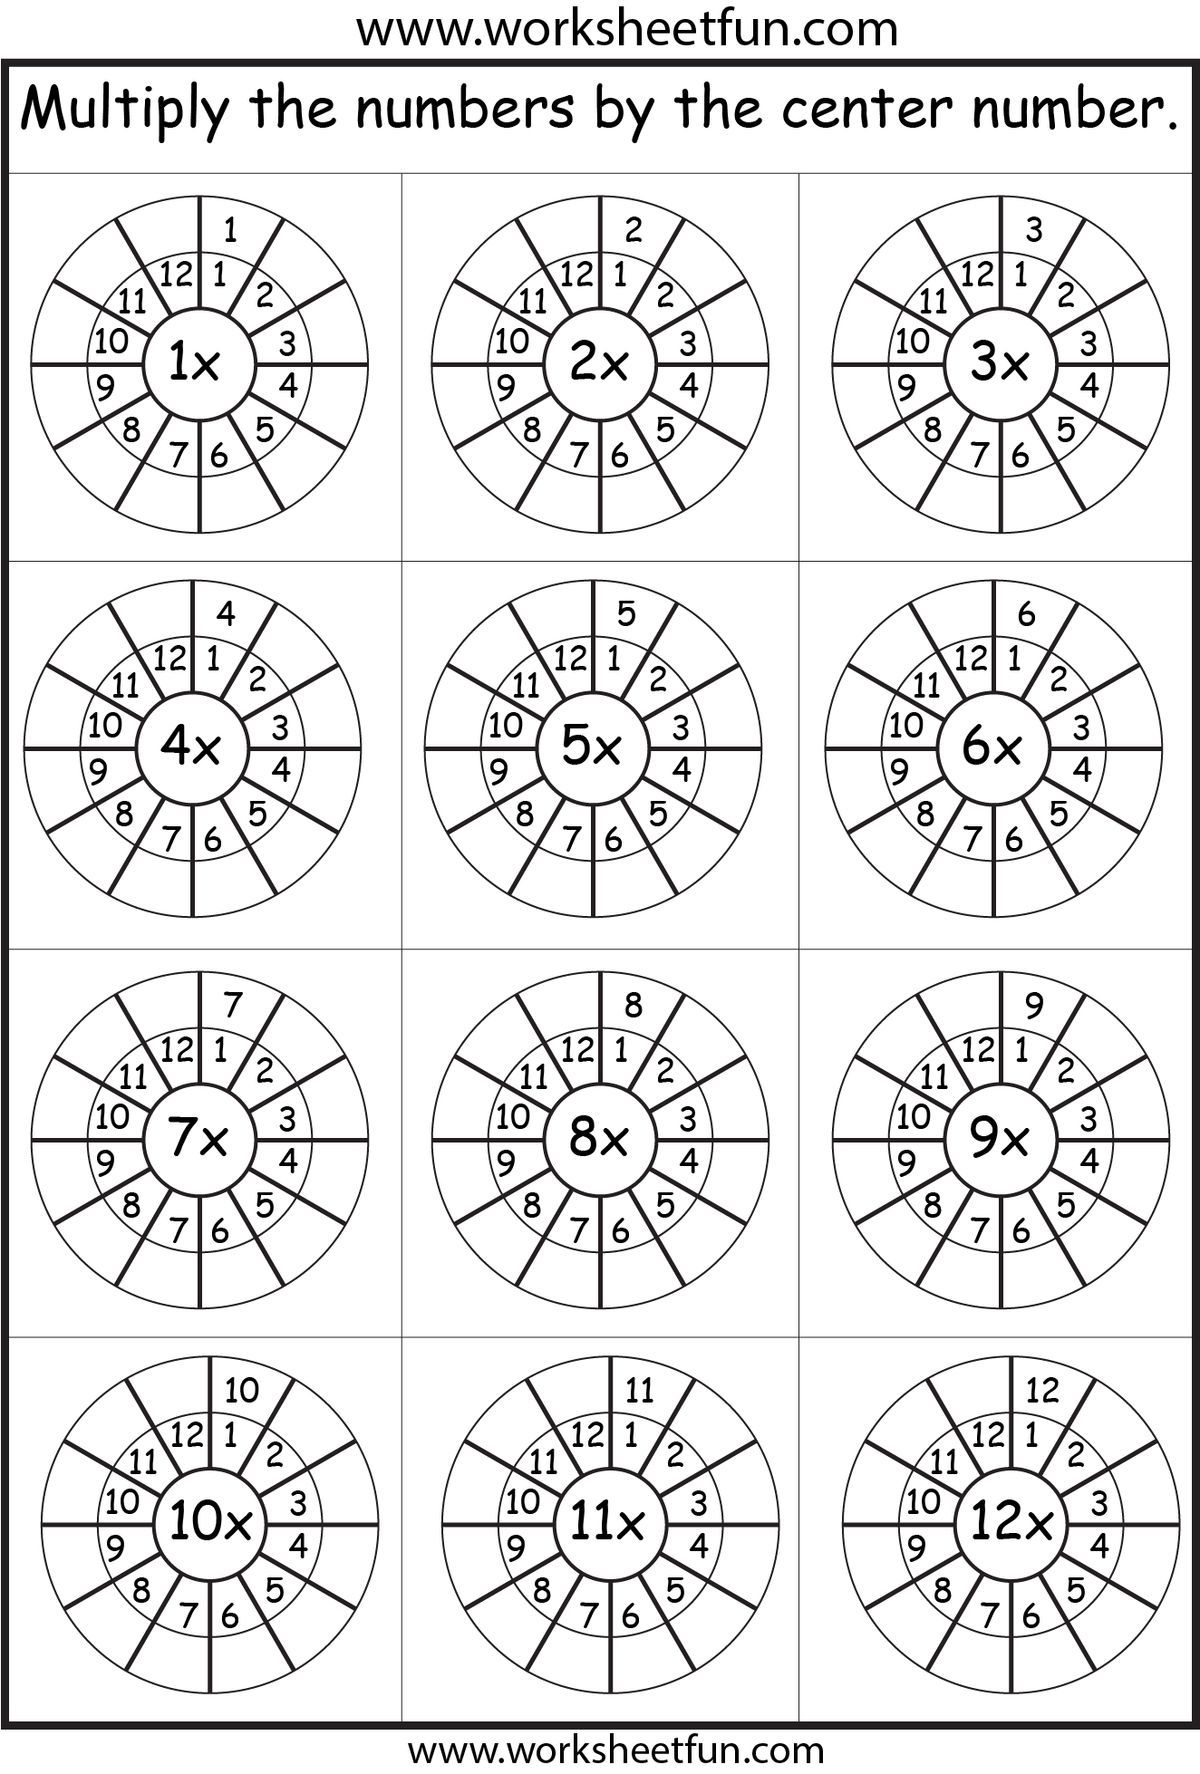 FREE Printable Worksheets | Little Chick | Pinterest | Free ...